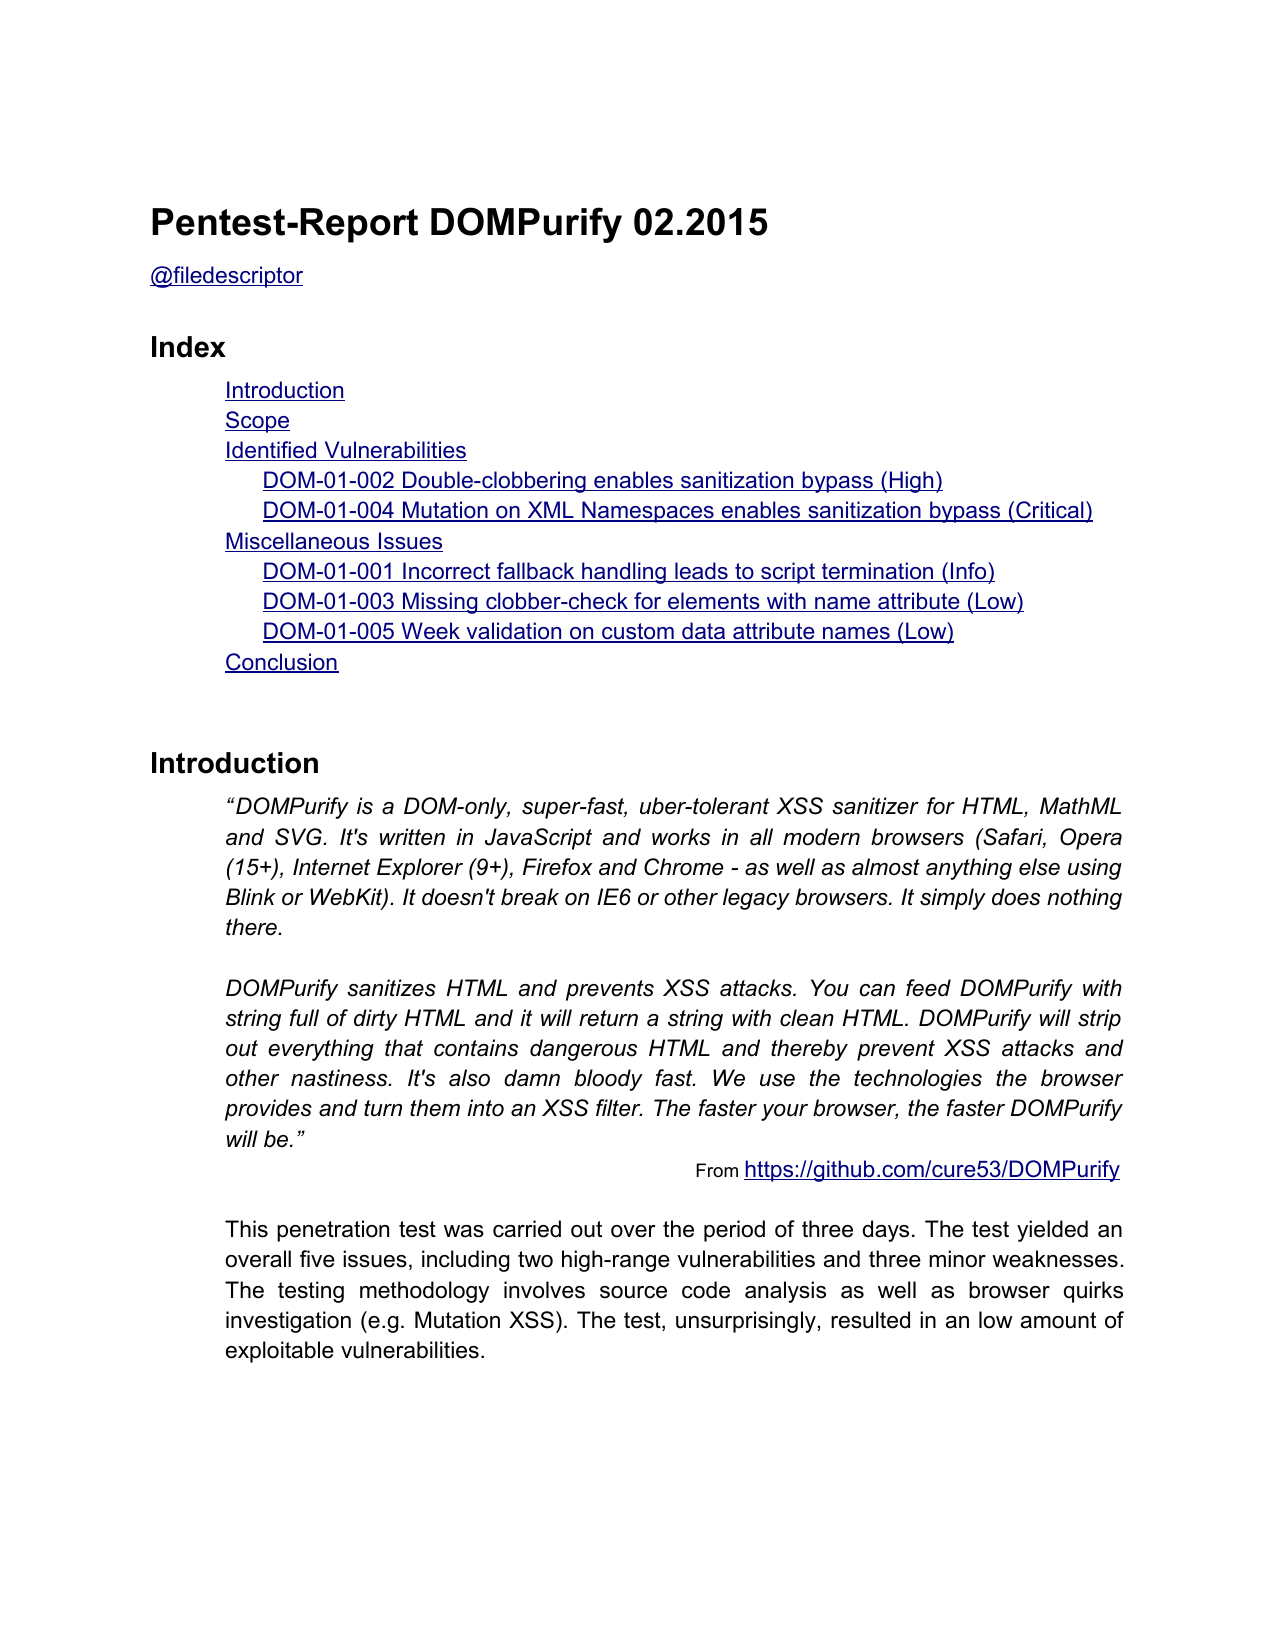 First page of the 'pentest-report dompurify' PDF